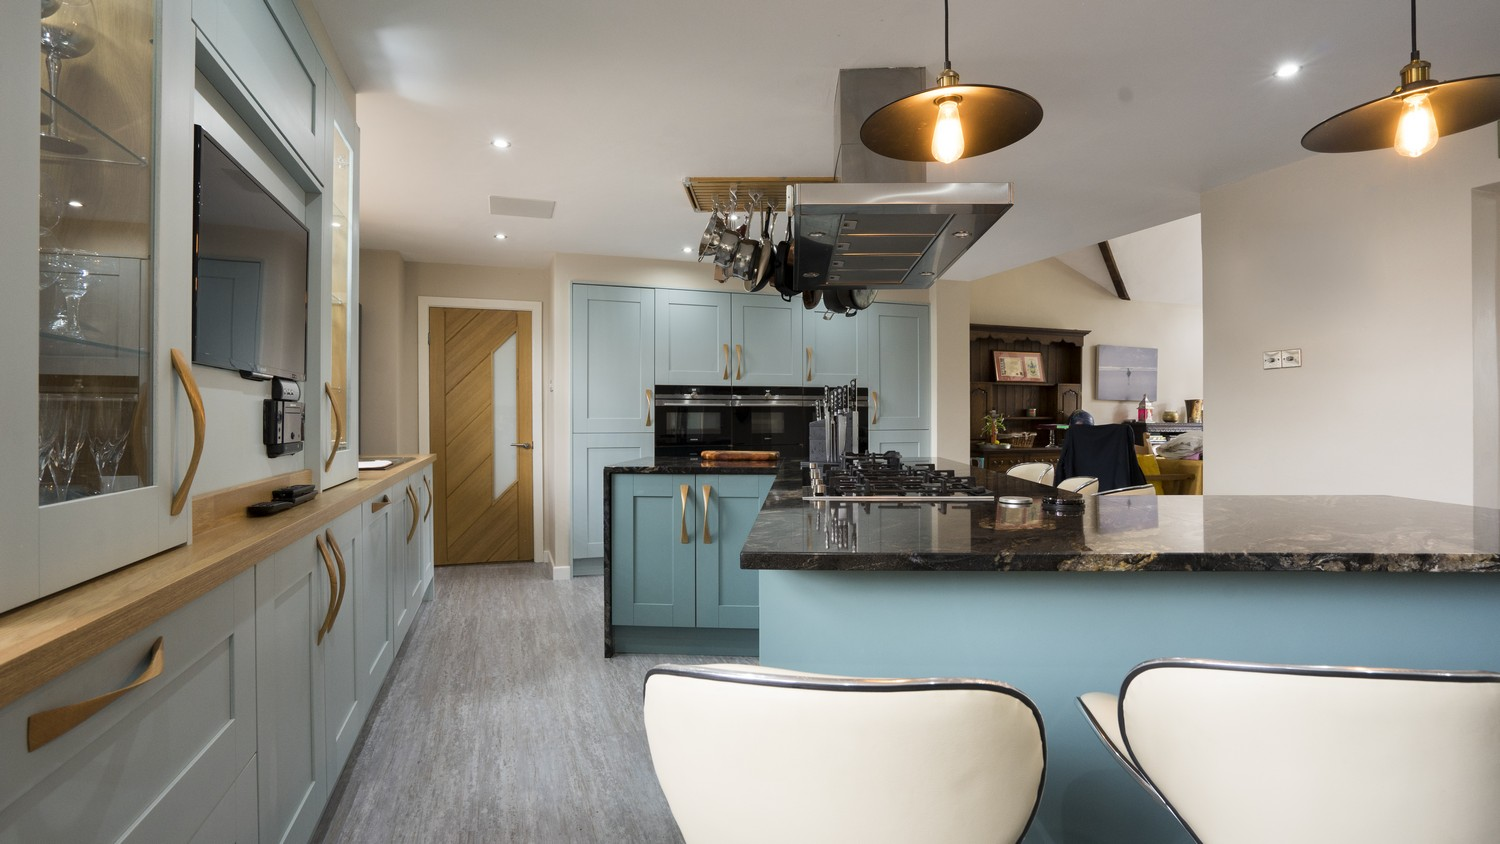 Blue shaker kitchen featuring a large central cooking hob with extractor fan, a perfect setup for any keen chef.